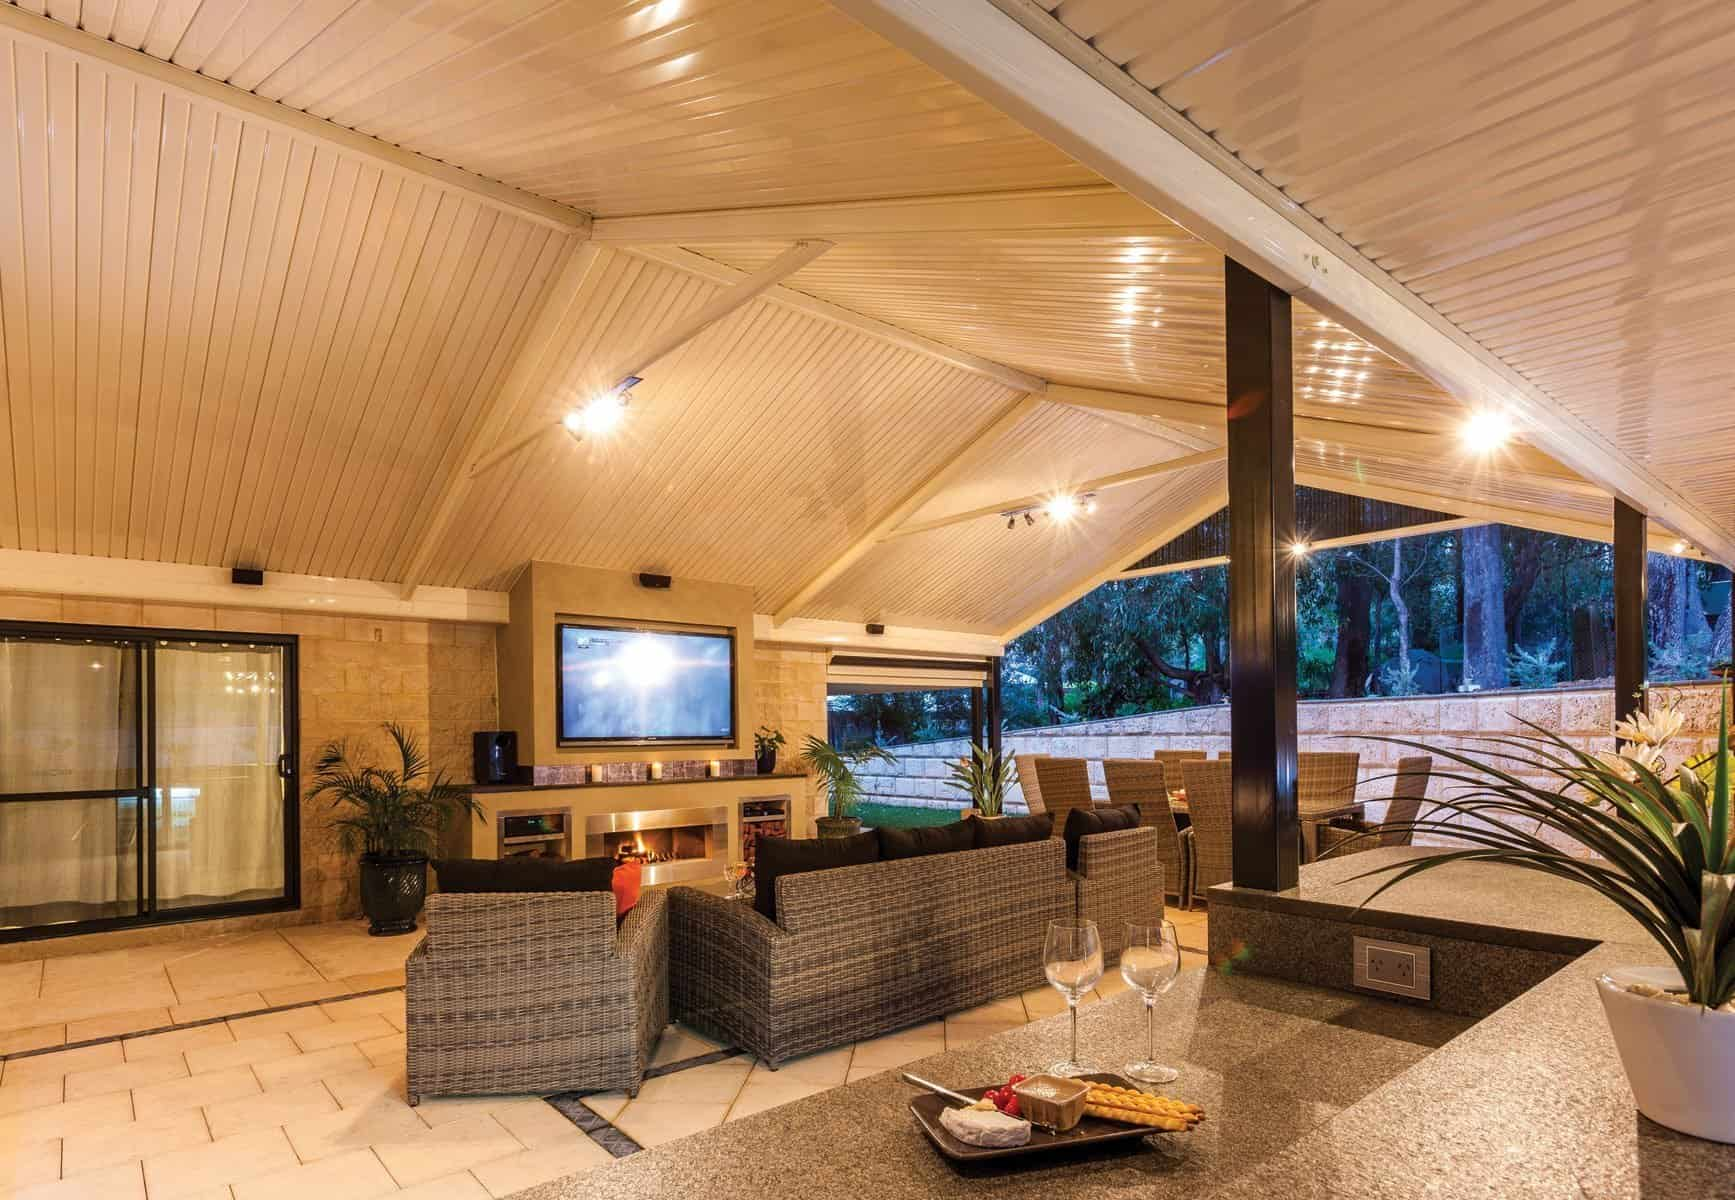 Eco Friendly and Sustainable Gable Patio Design